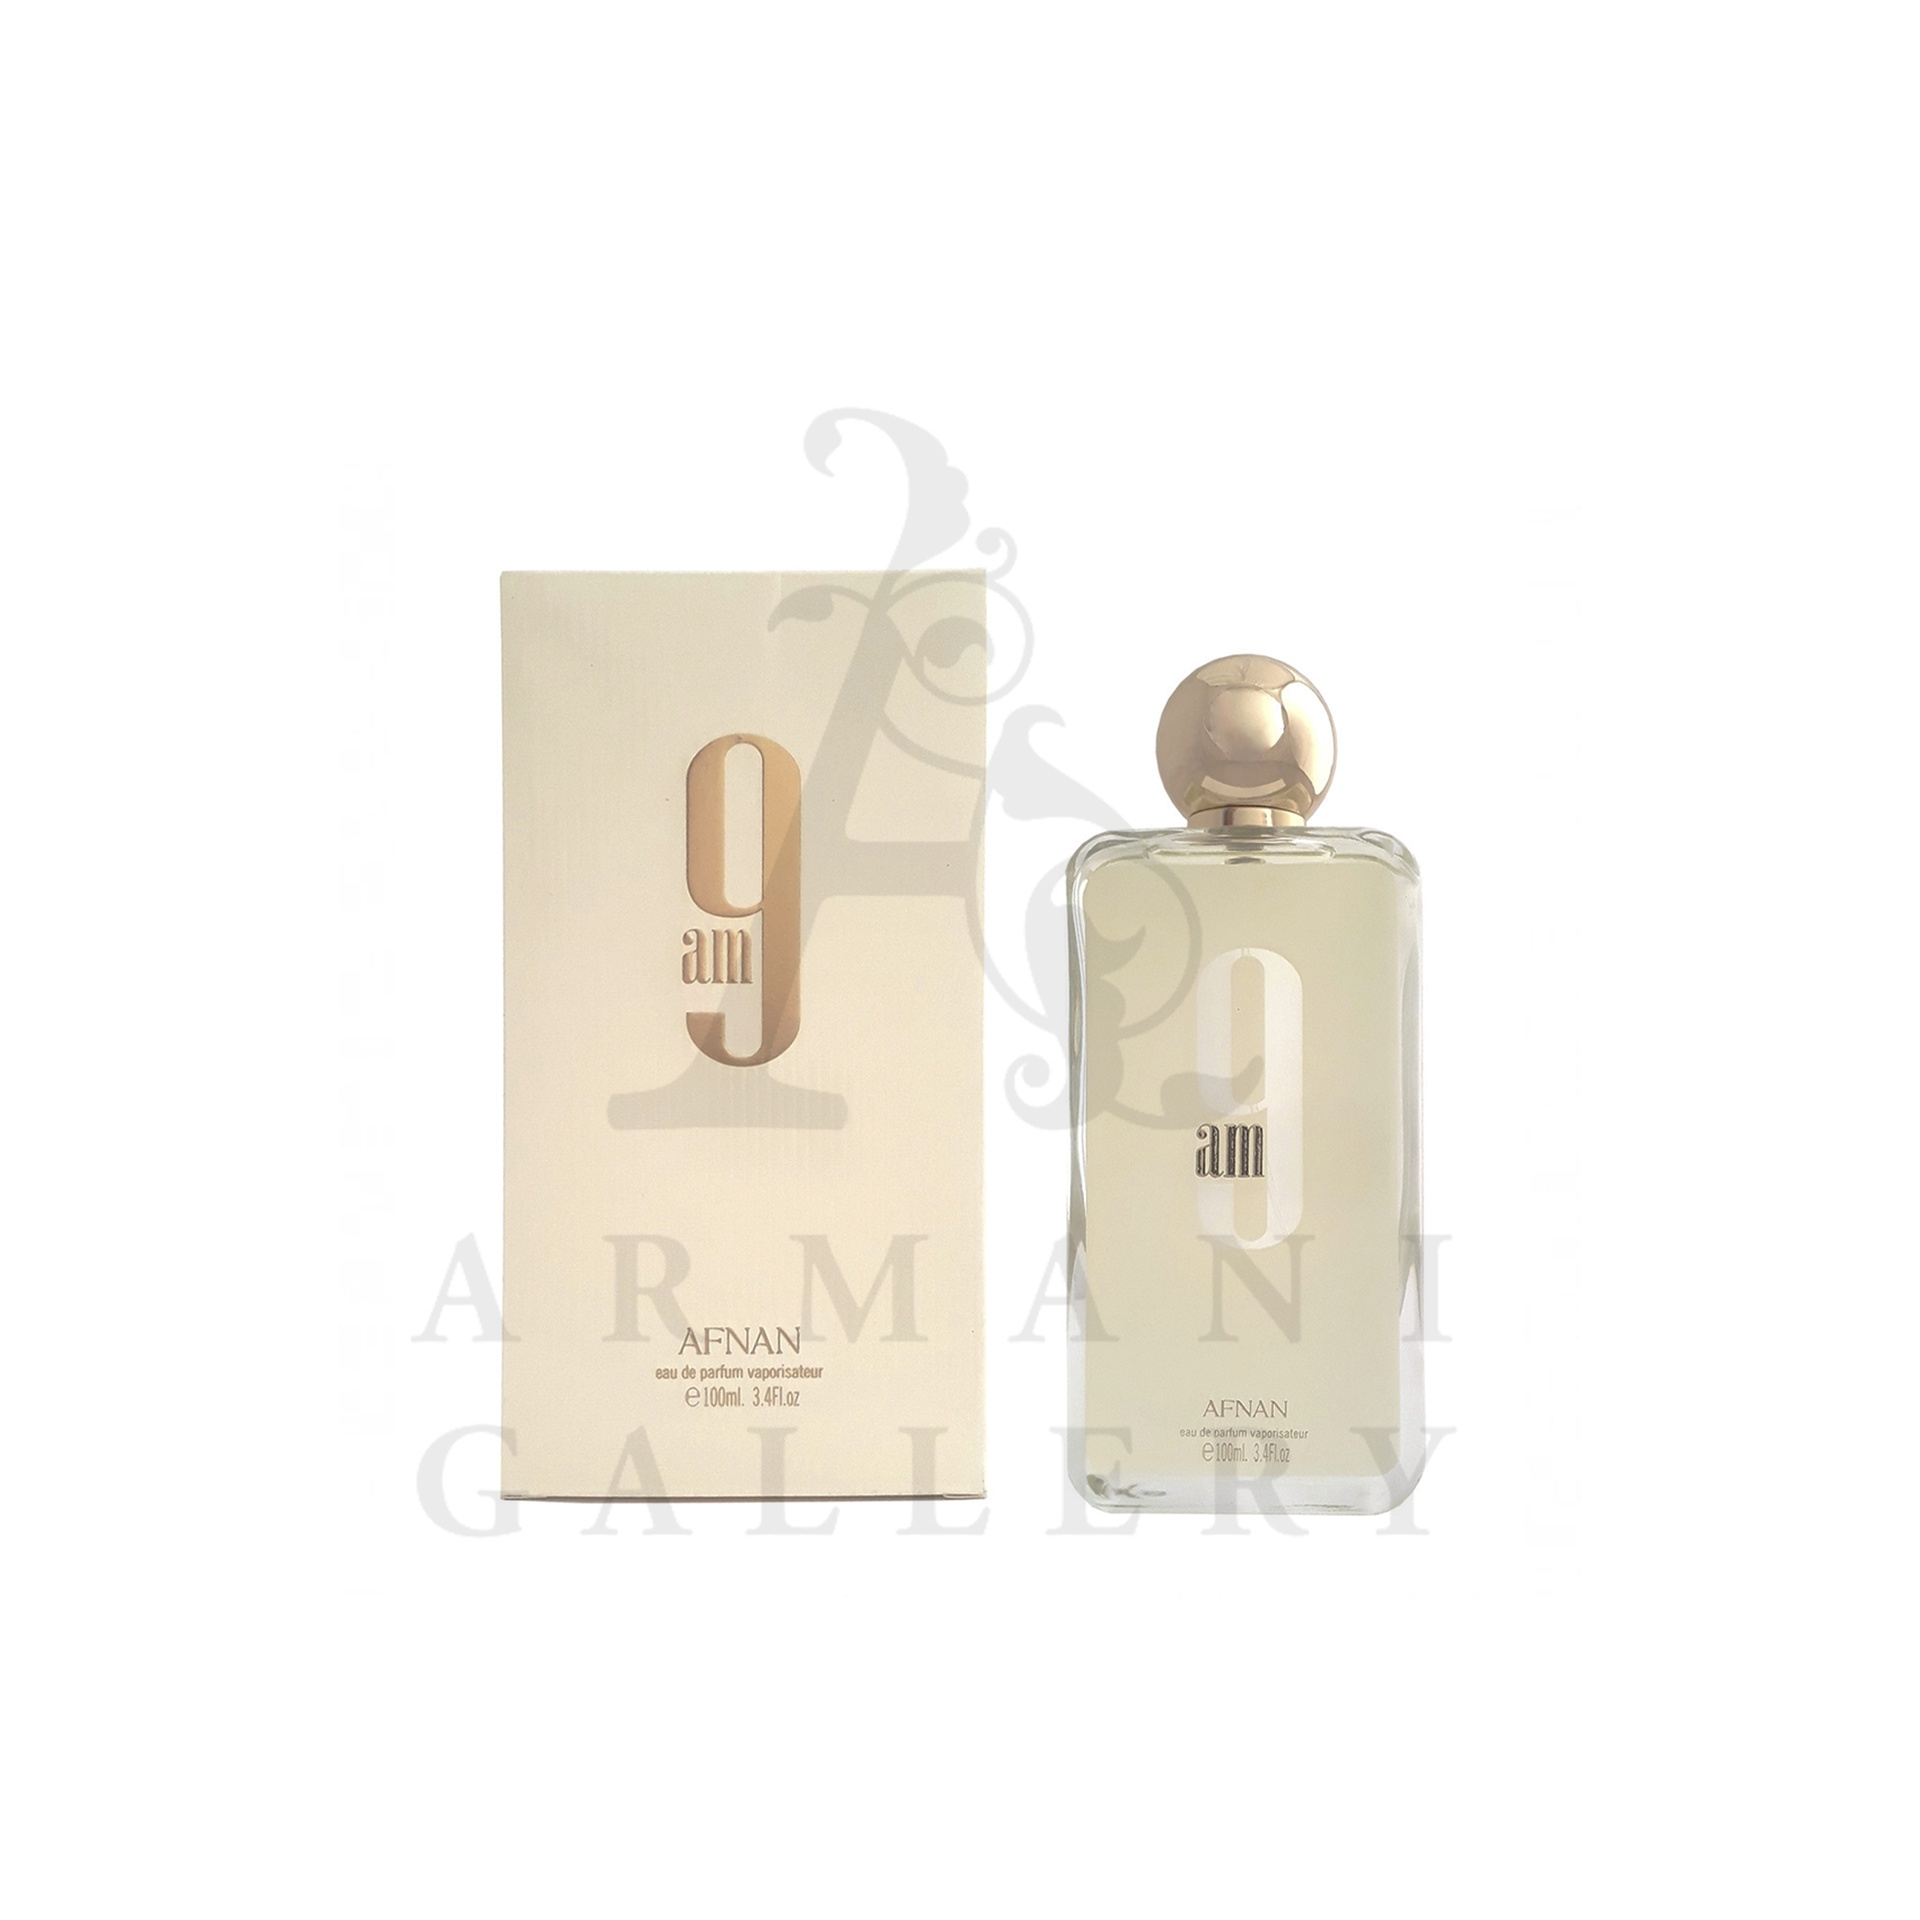 Buy 9 AM 100Ml EDP